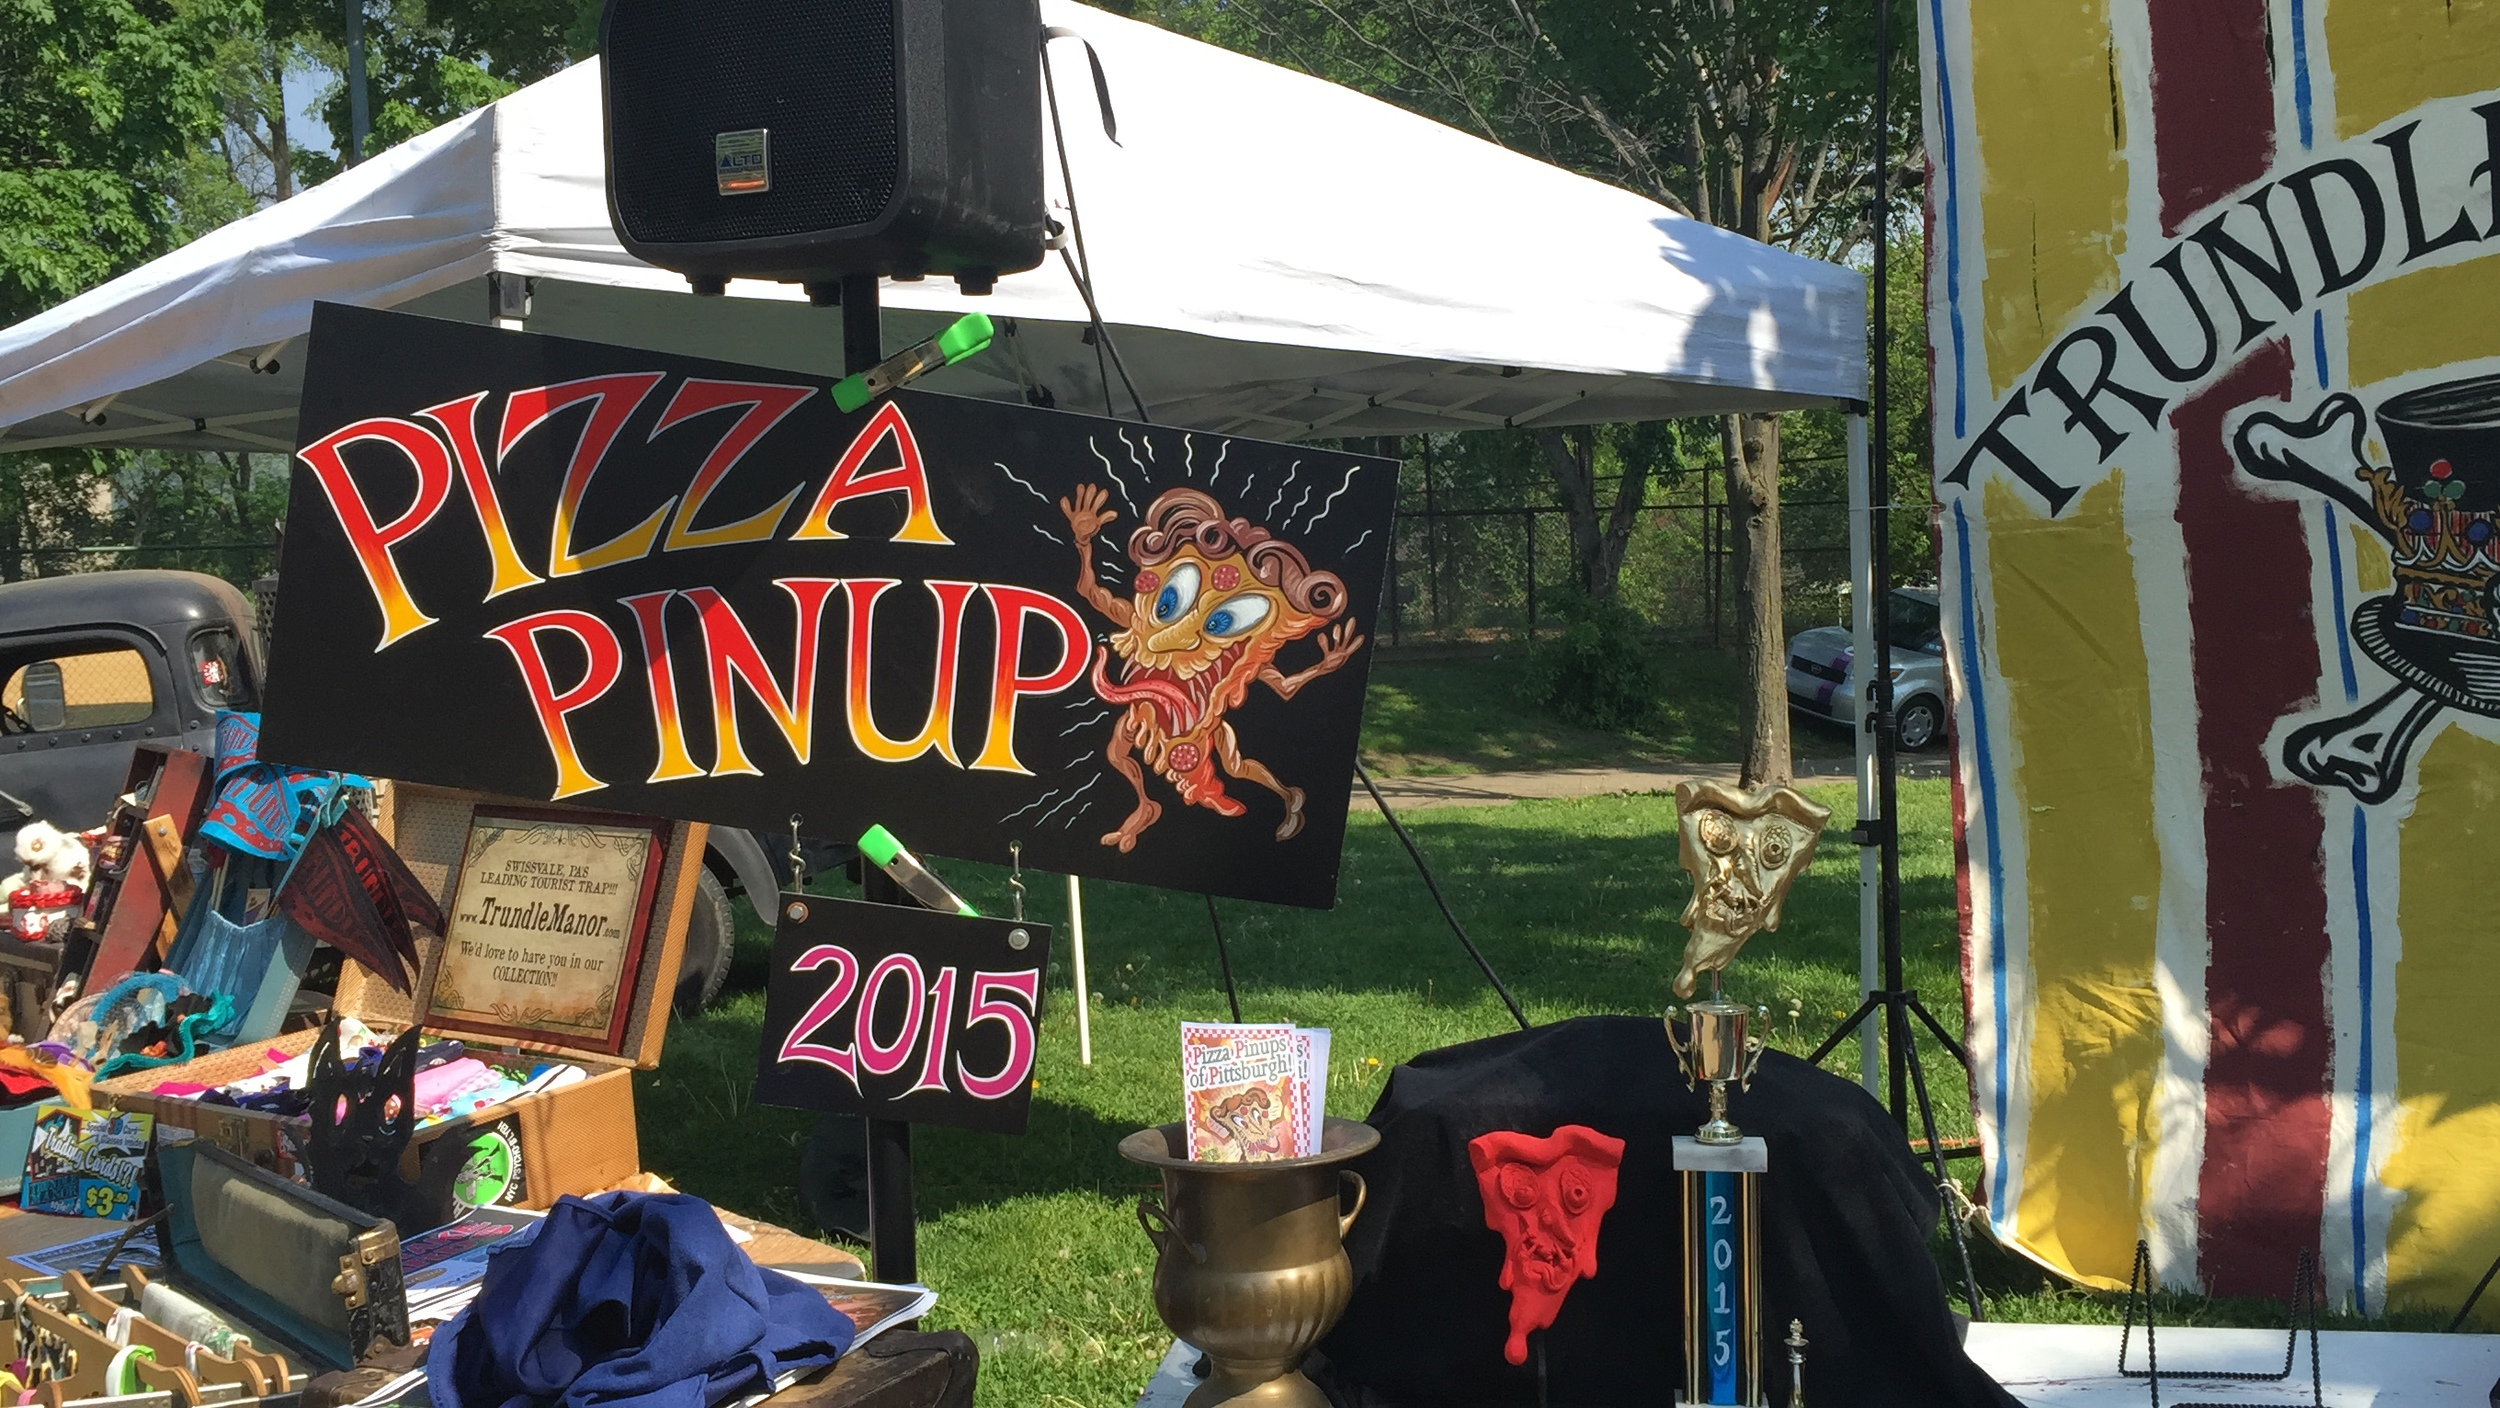 Pizza Pinup Contest